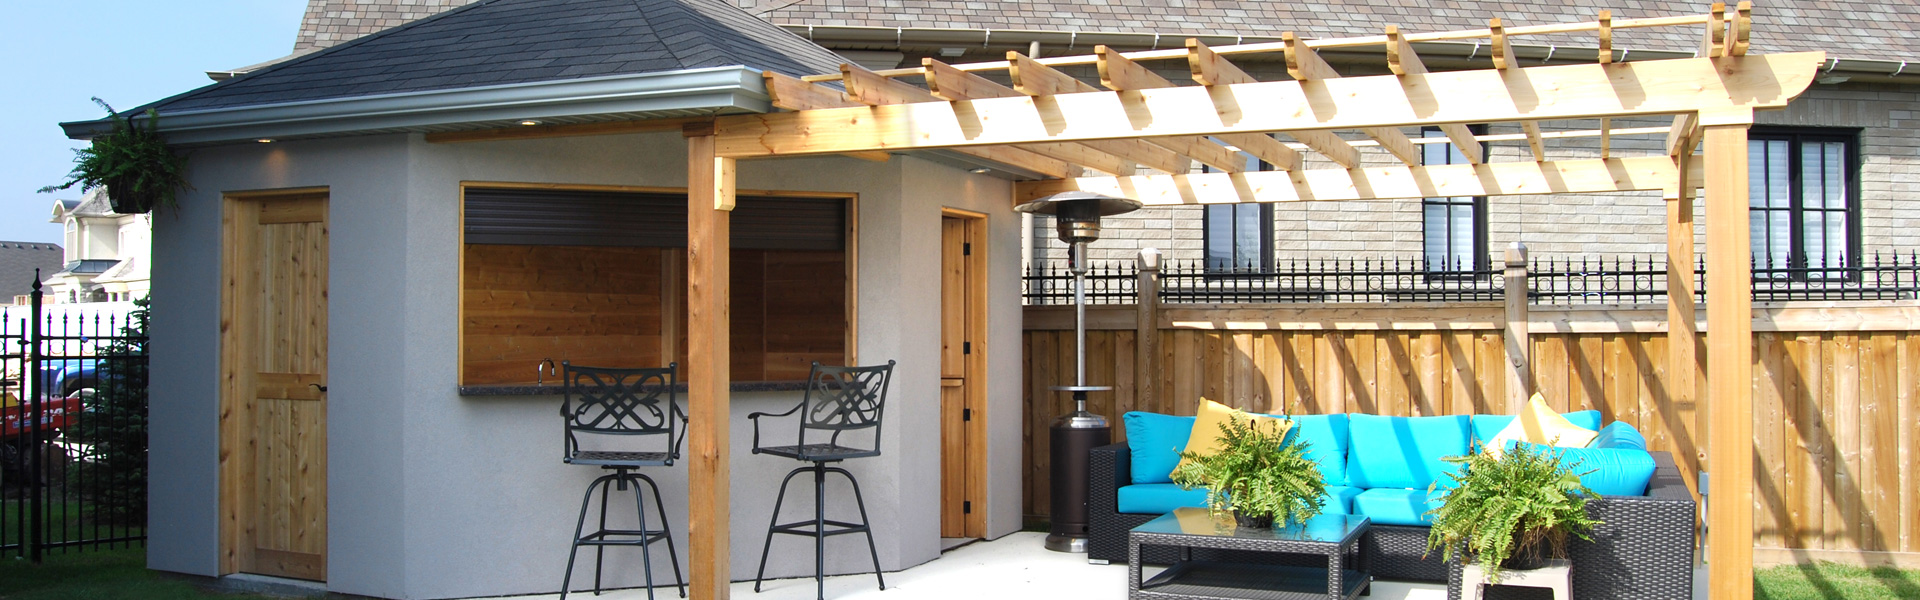 Custom outdoor structures pool cabanas toronto cedar wood for Custom pool cabanas